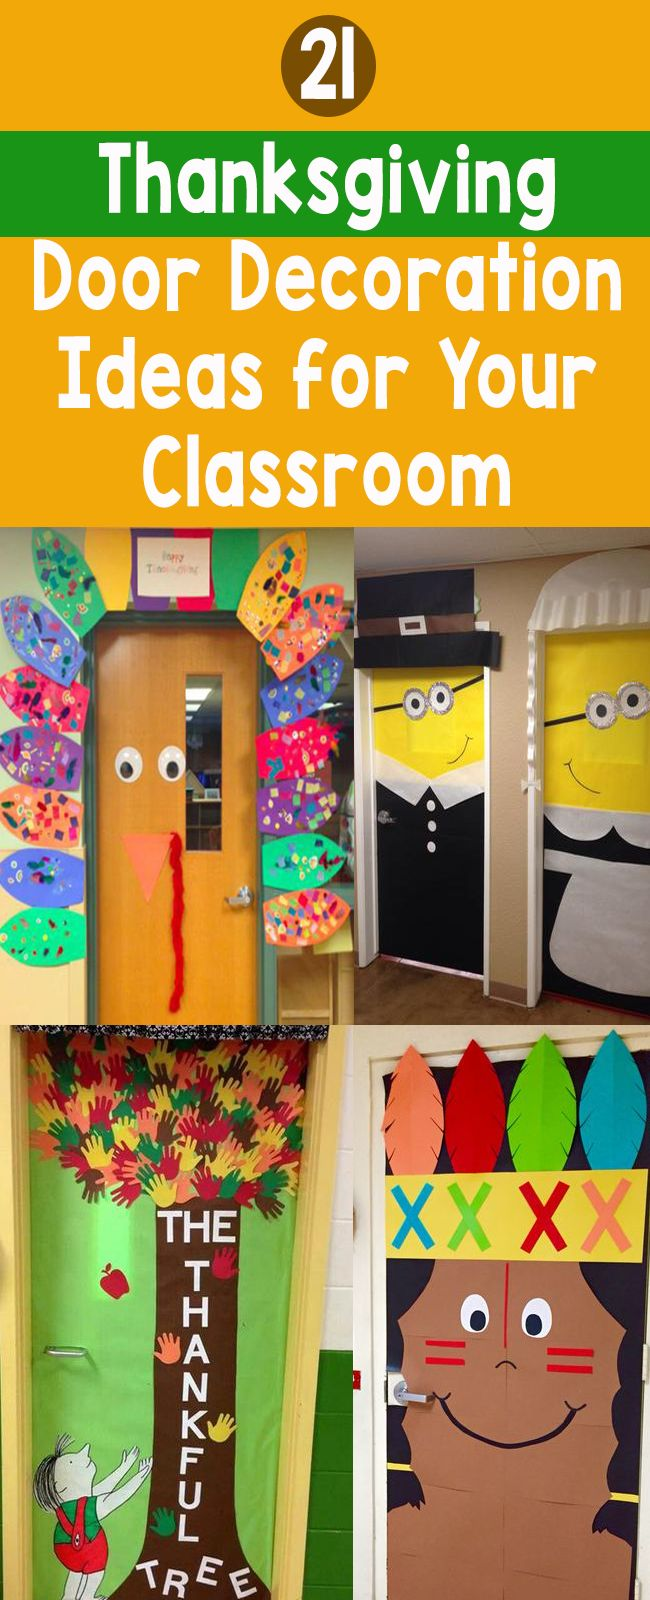 Best 25+ Preschool door ideas on Pinterest | Preschool ...